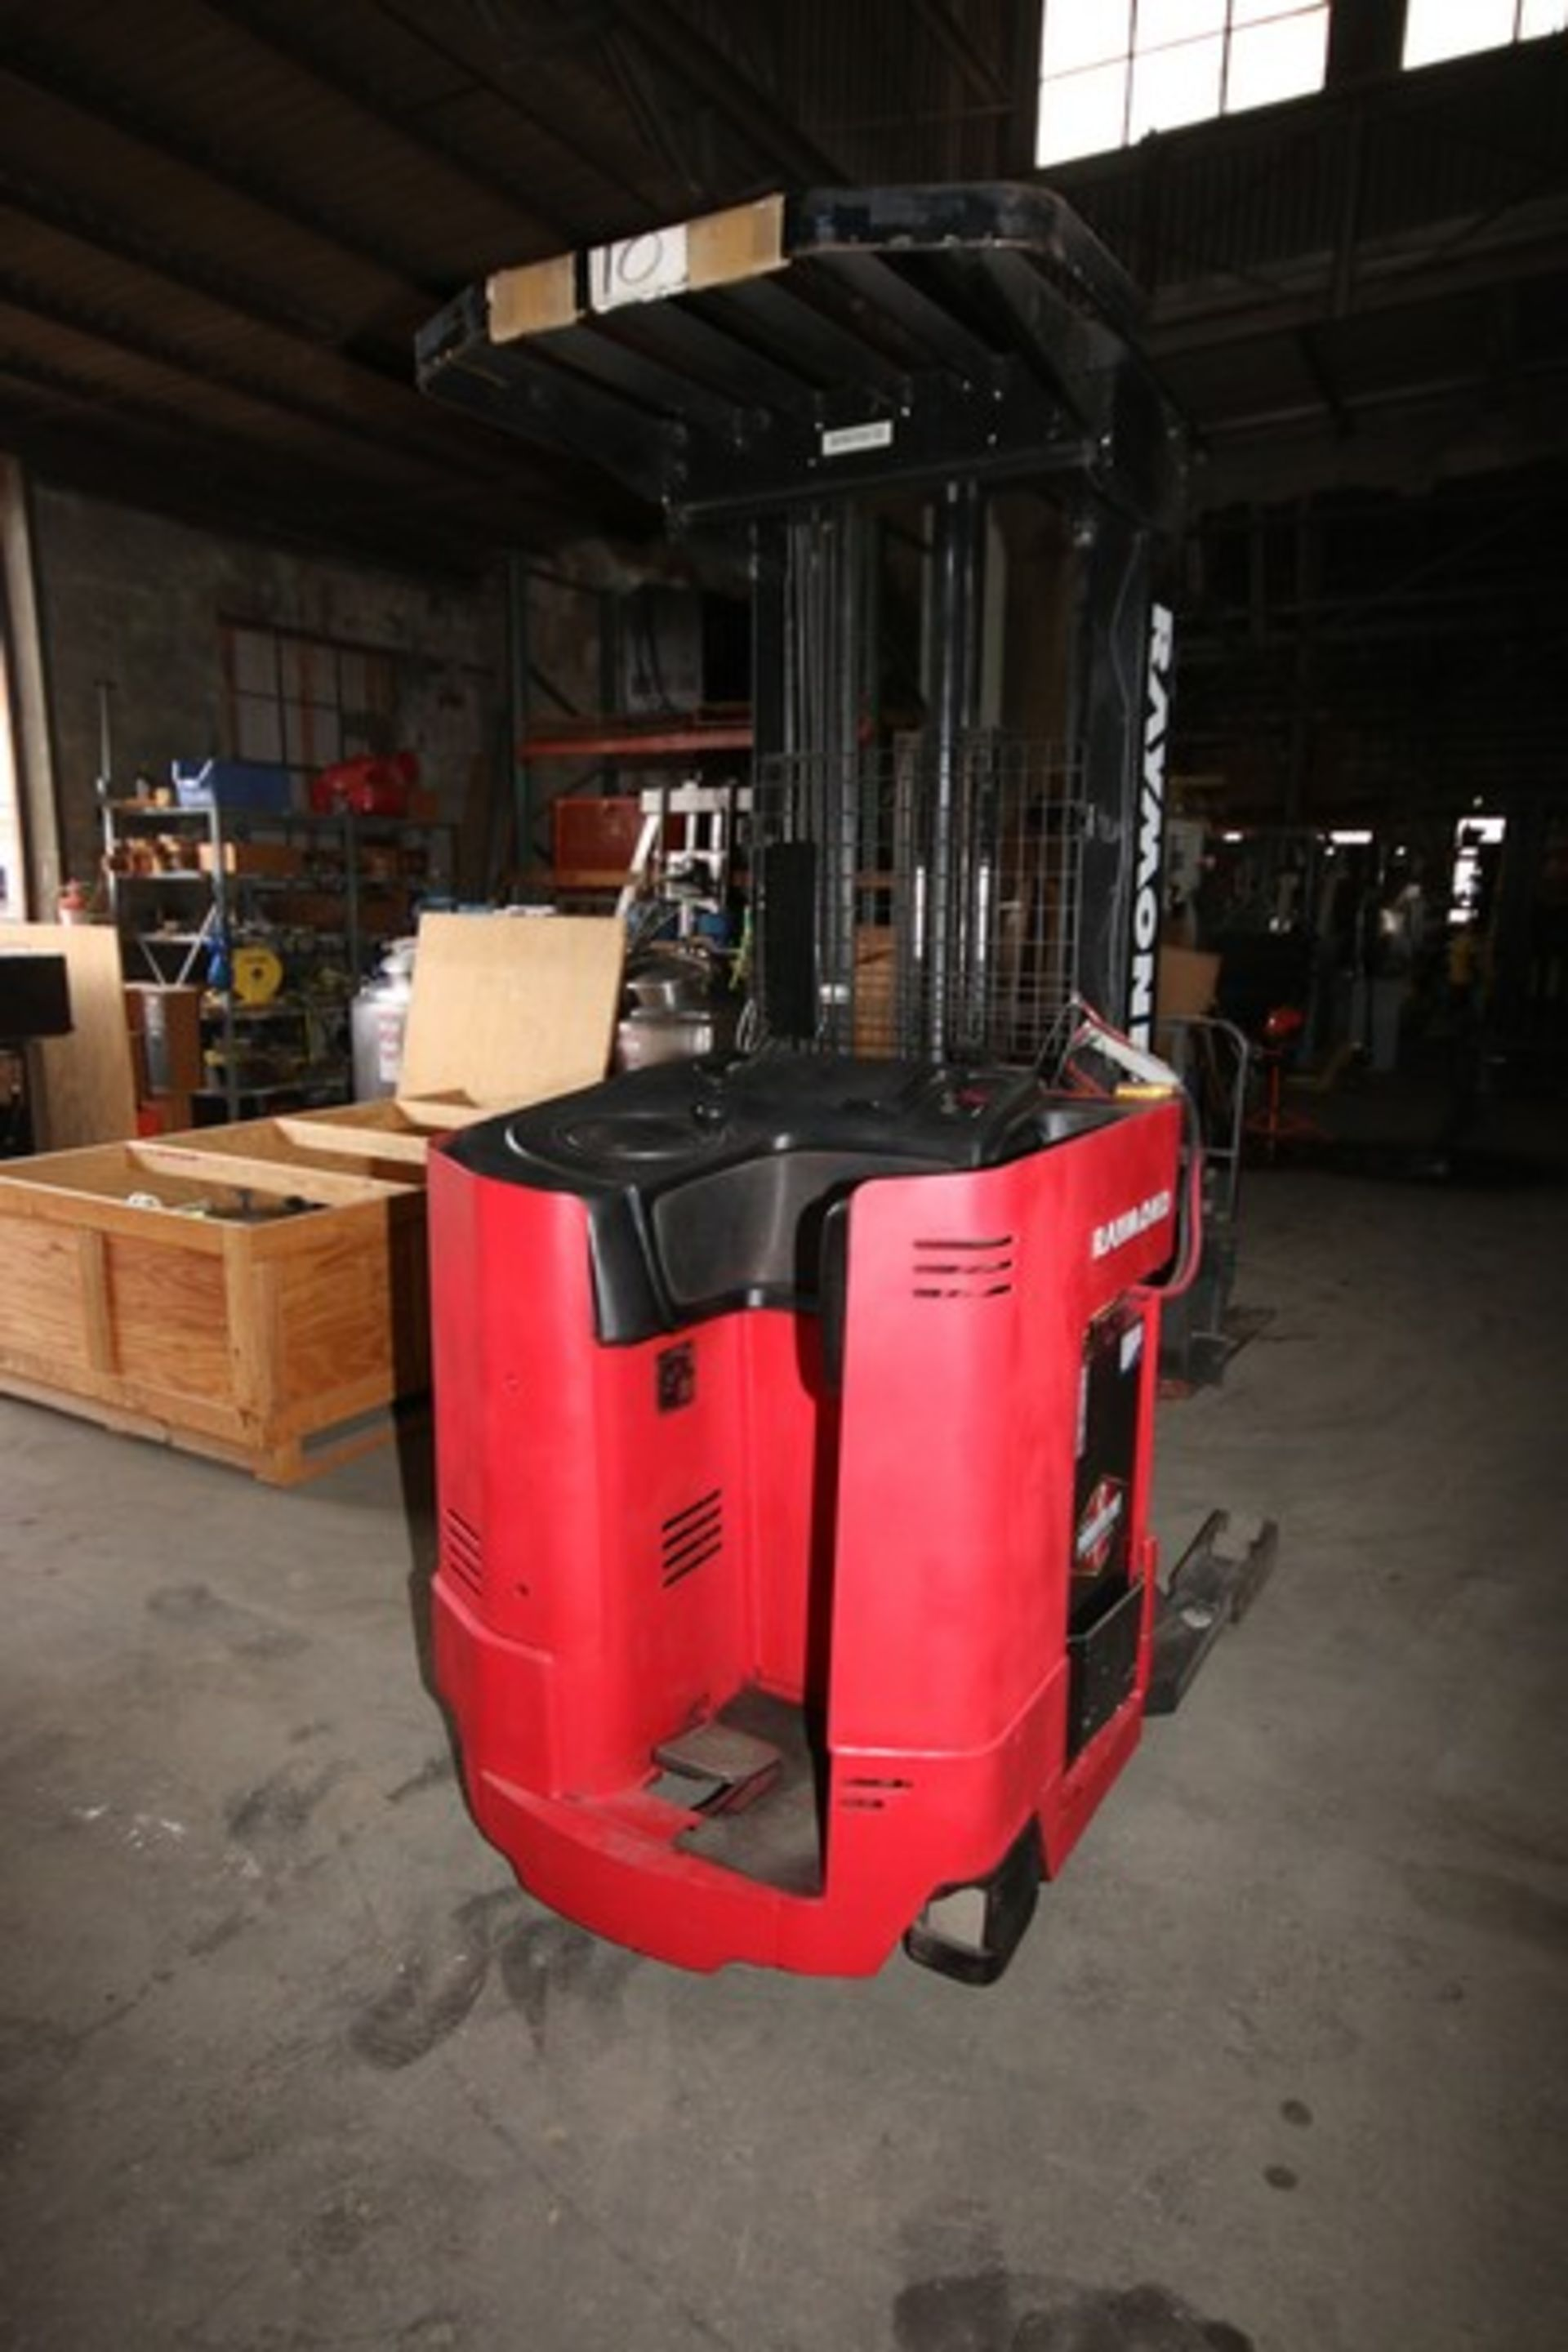 Lot 50 - Raymond 4,500 lb. Stand-Up Electric Forklift, M/N EASI, S/N EZ-A-94-01363, with Side Shift, Tilt,